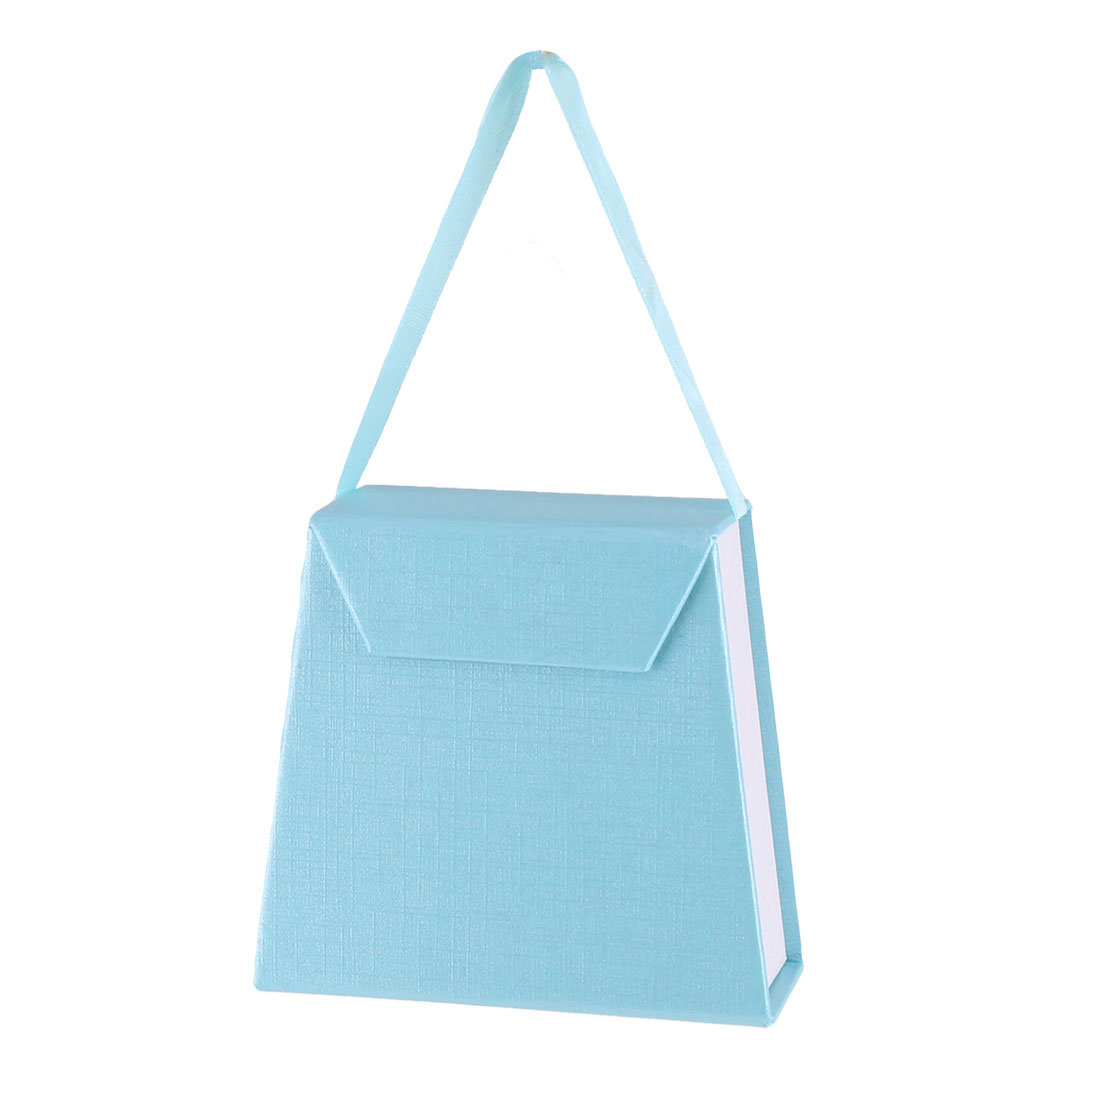 Lady Outdoor Handbag Design Pengdant Jewelry Holder Storage Gift Box Case Cyan